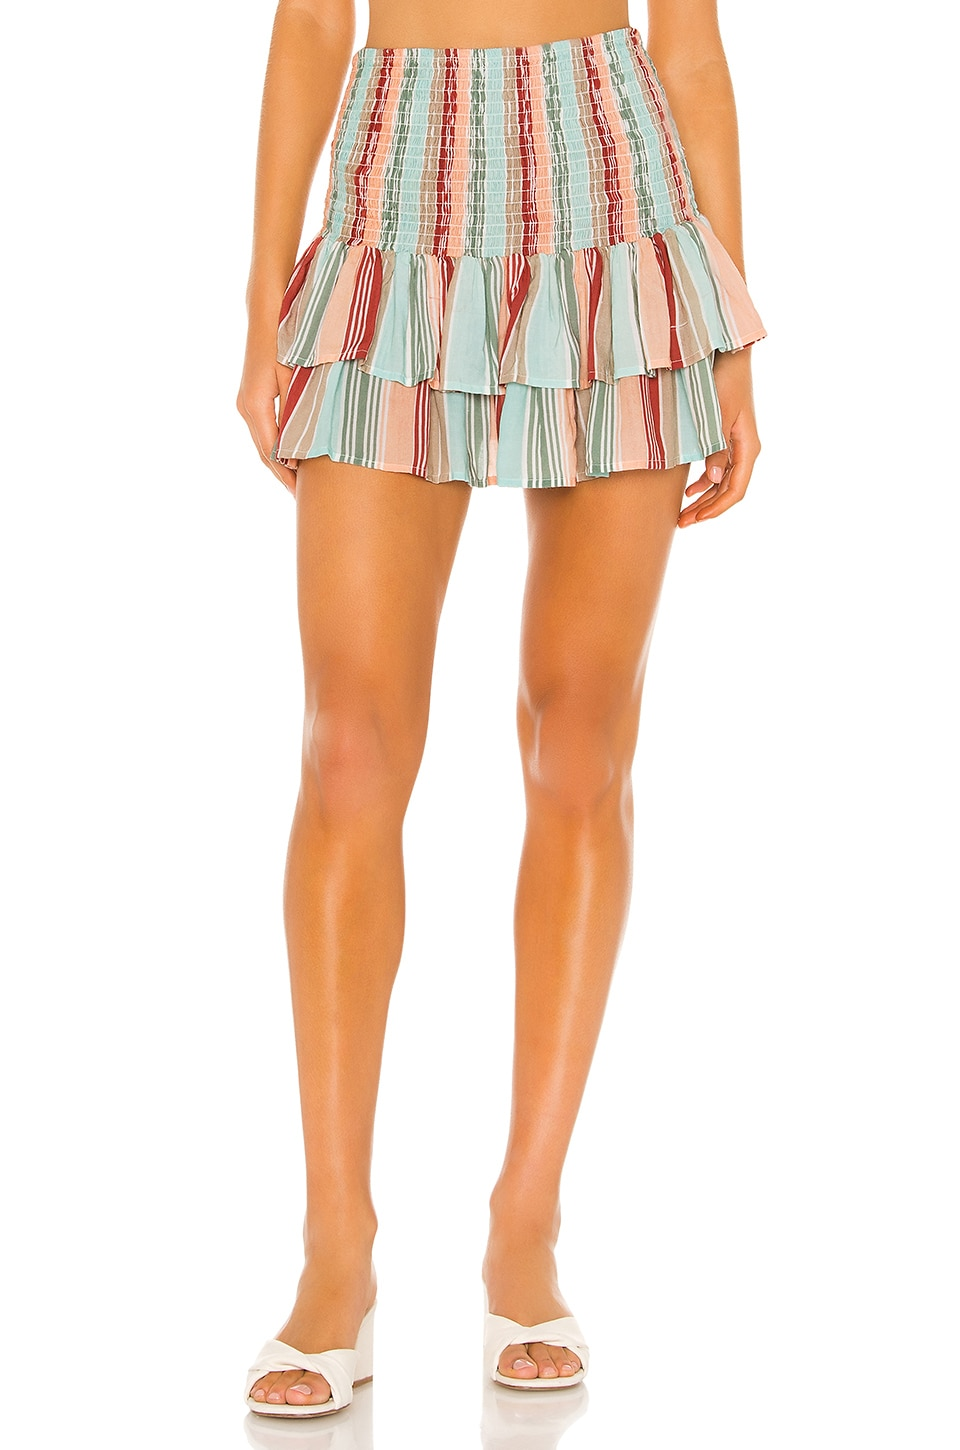 PILYQ x Helen Owen Smocked Skirt